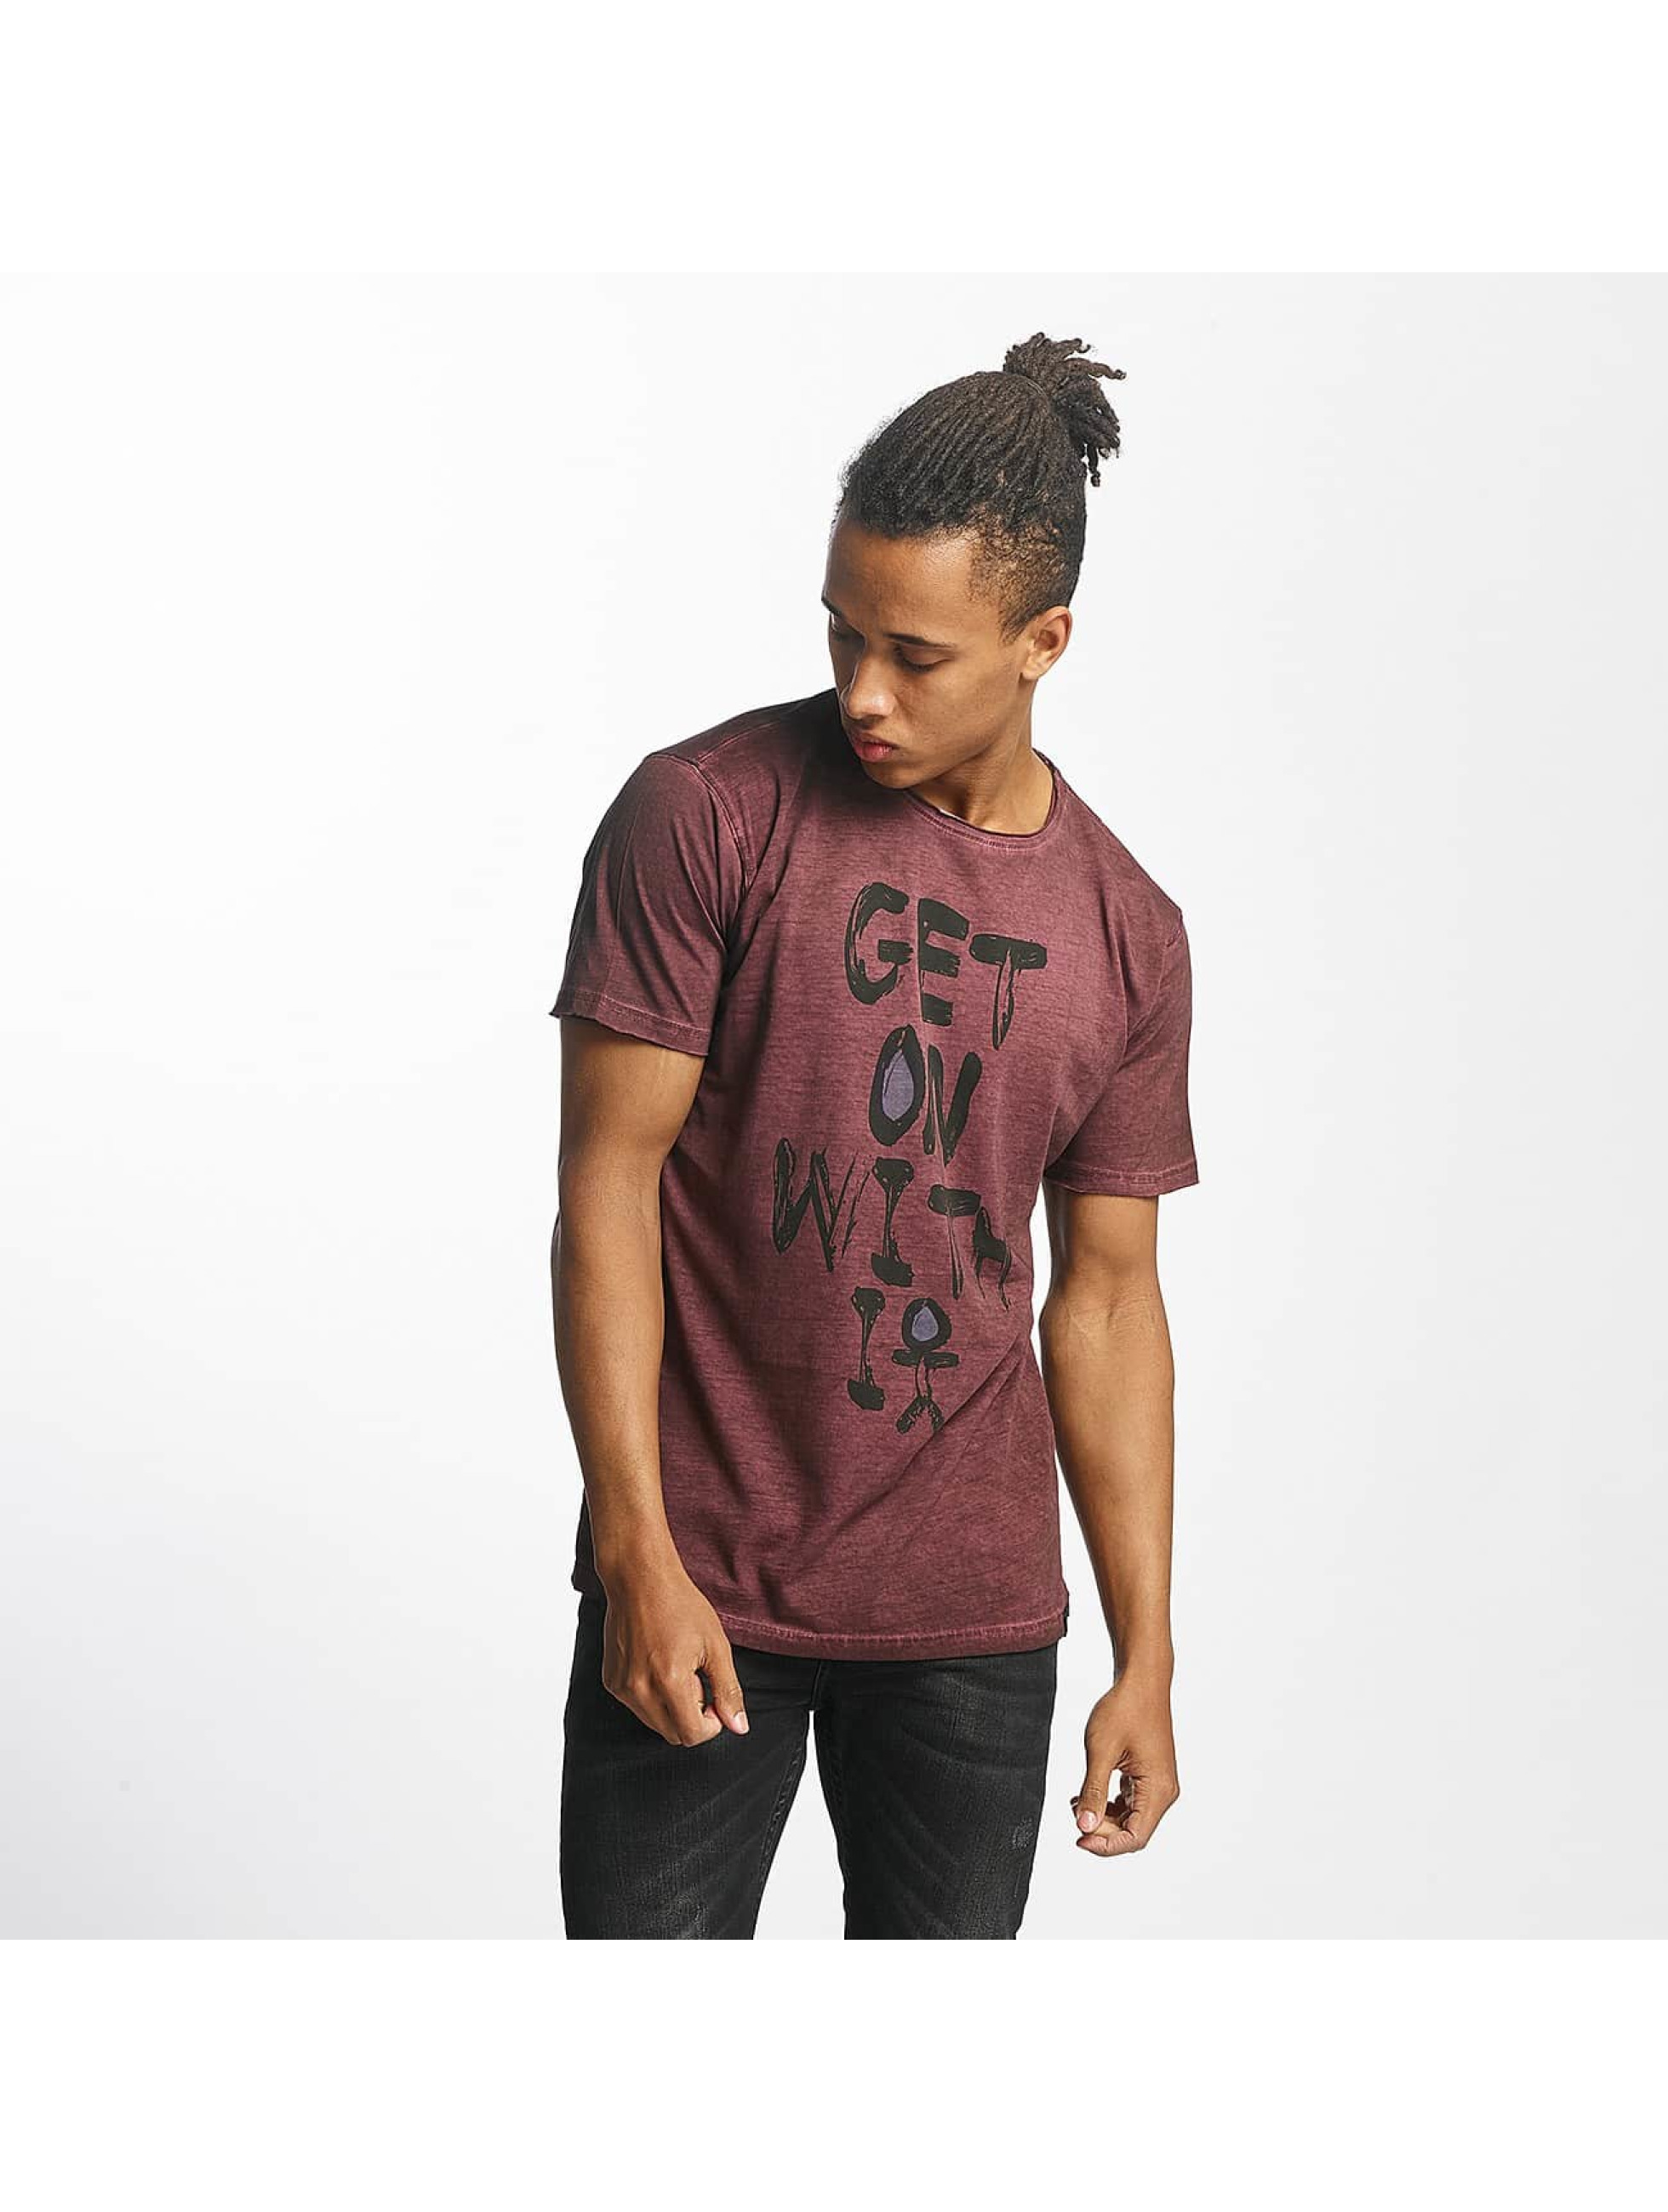 Paris Premium t-shirt Get on with it rood